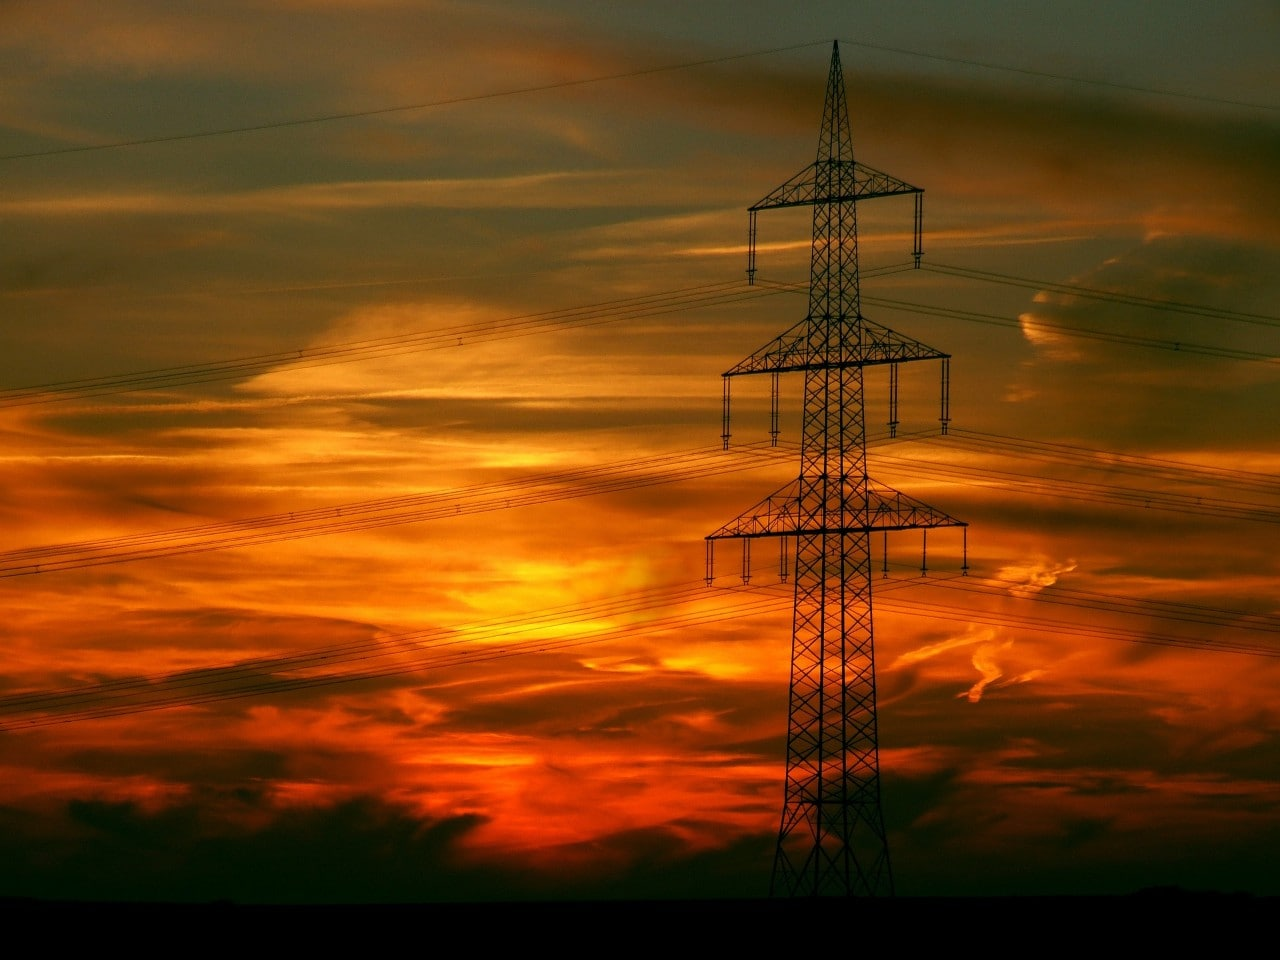 Power poles seen at sunset, representing the energy market.